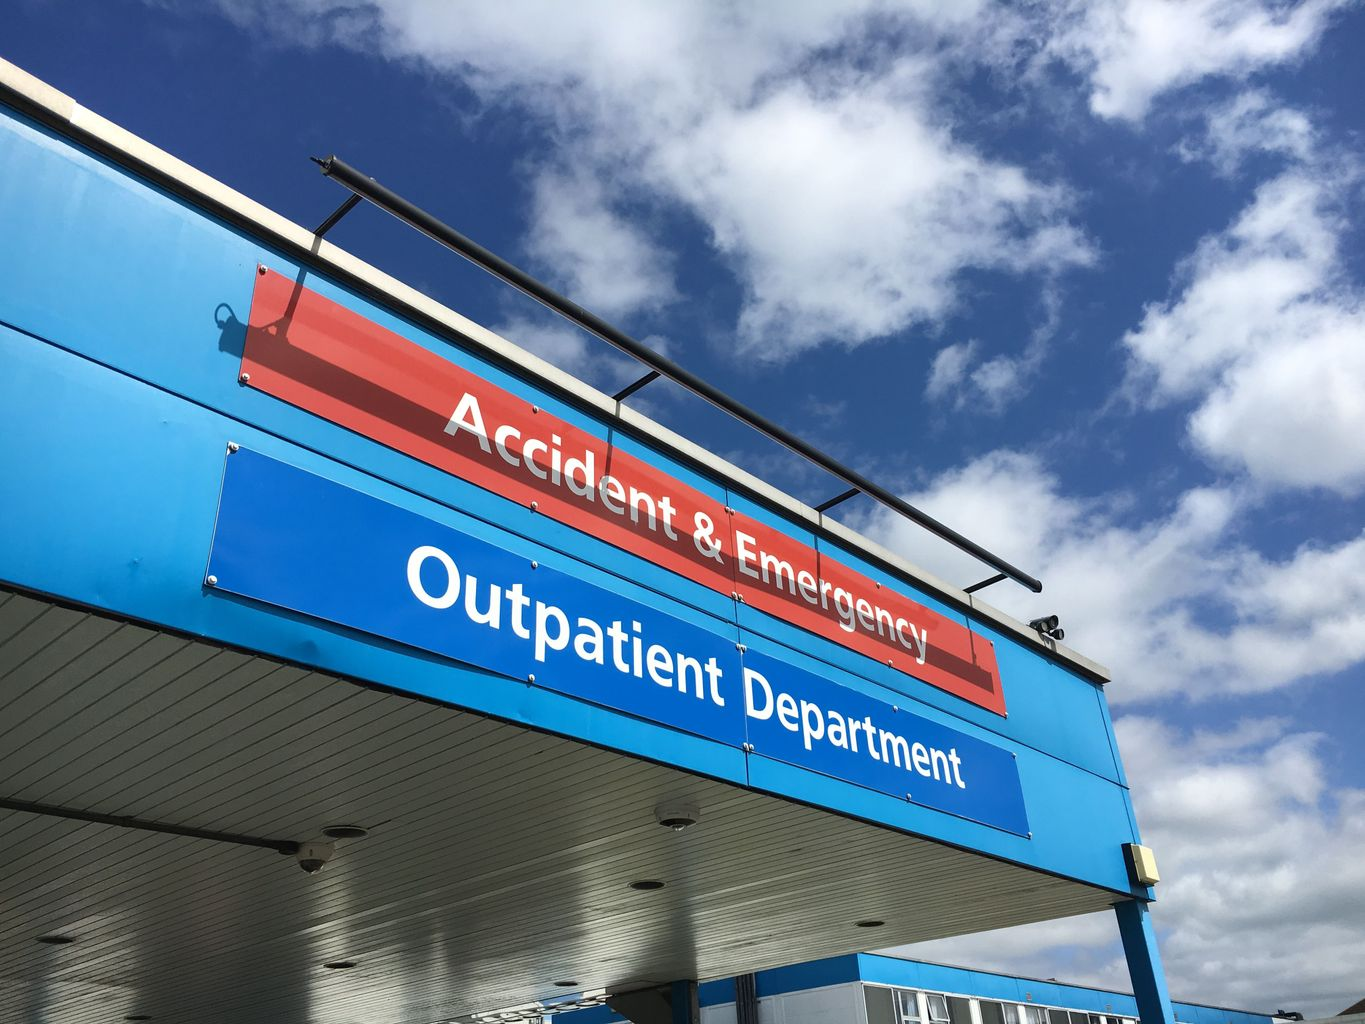 Torbay and Newton Abbot Community Hospitals receive £9m to expand A&E